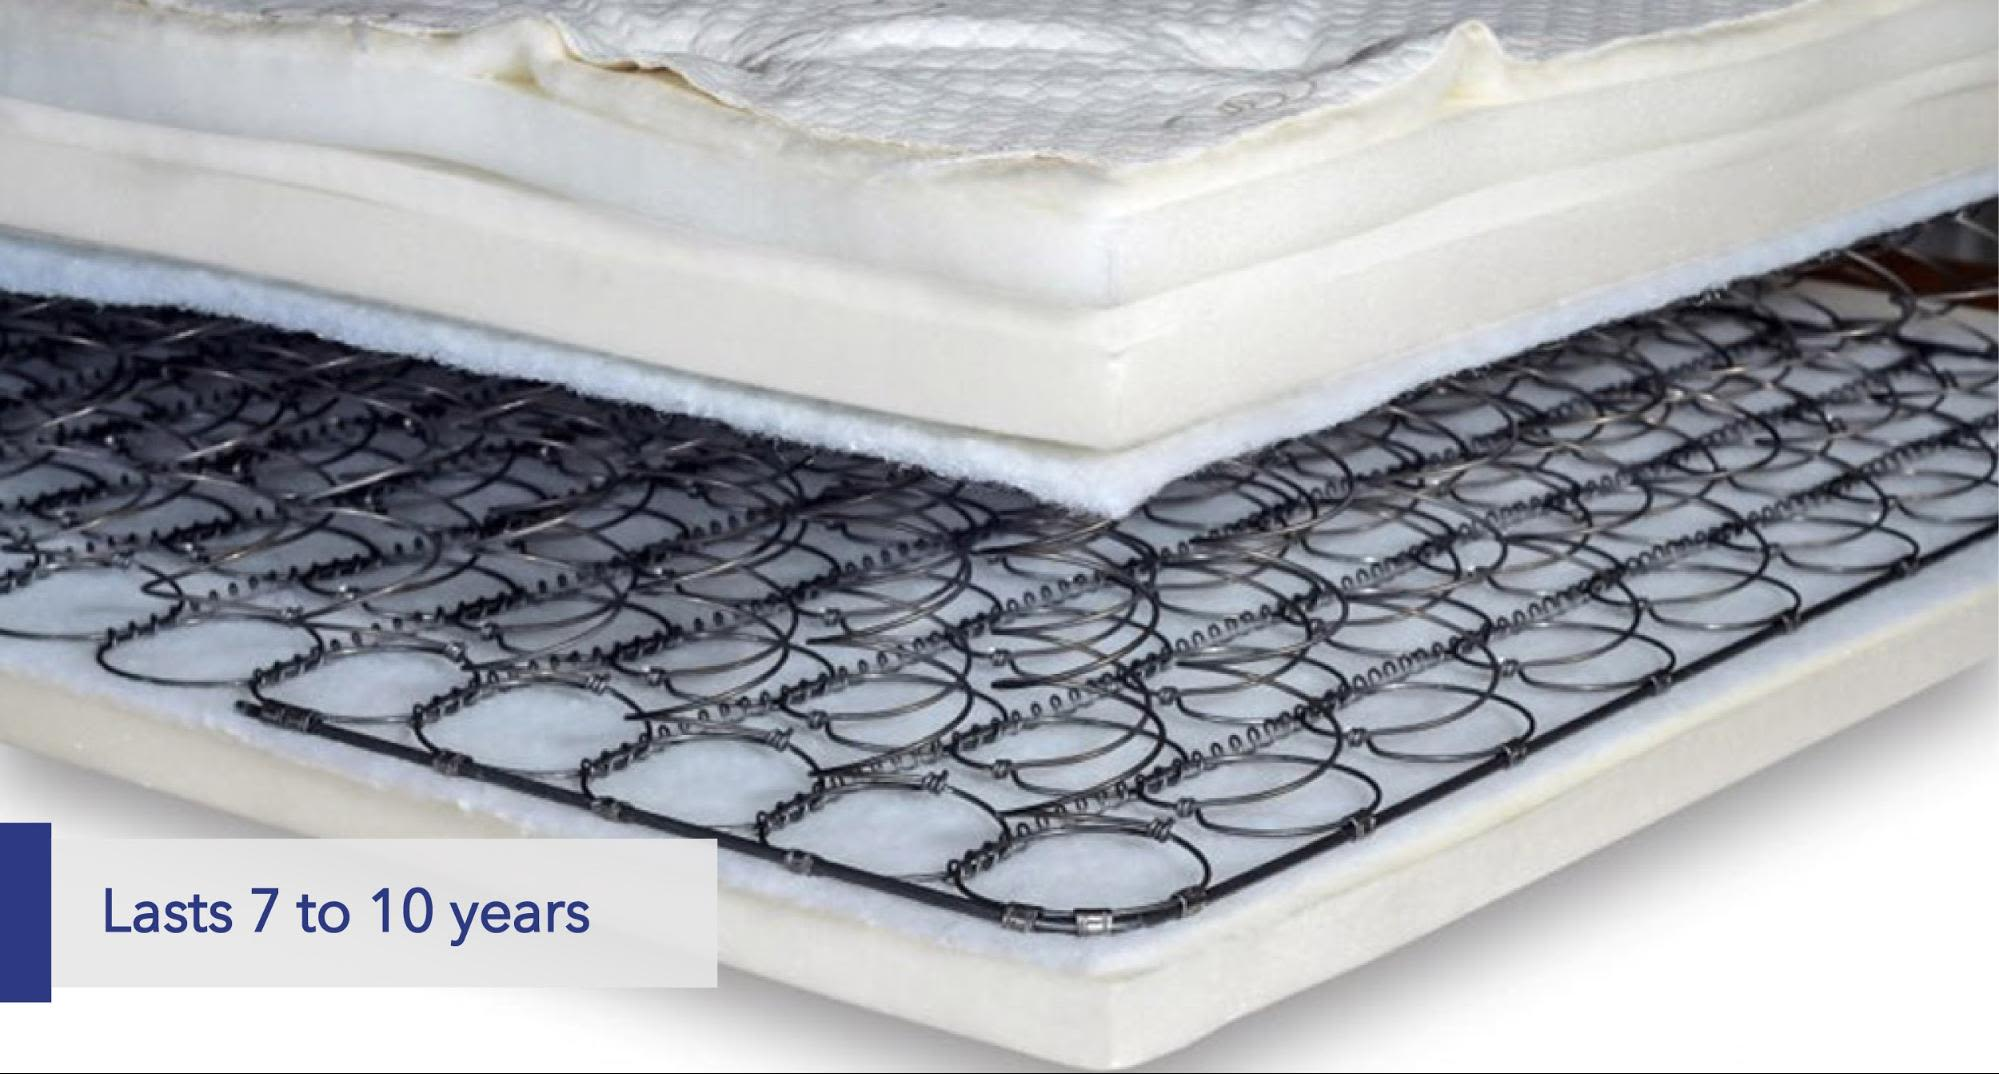 Innerspring mattress Lasts 7 to 10 years